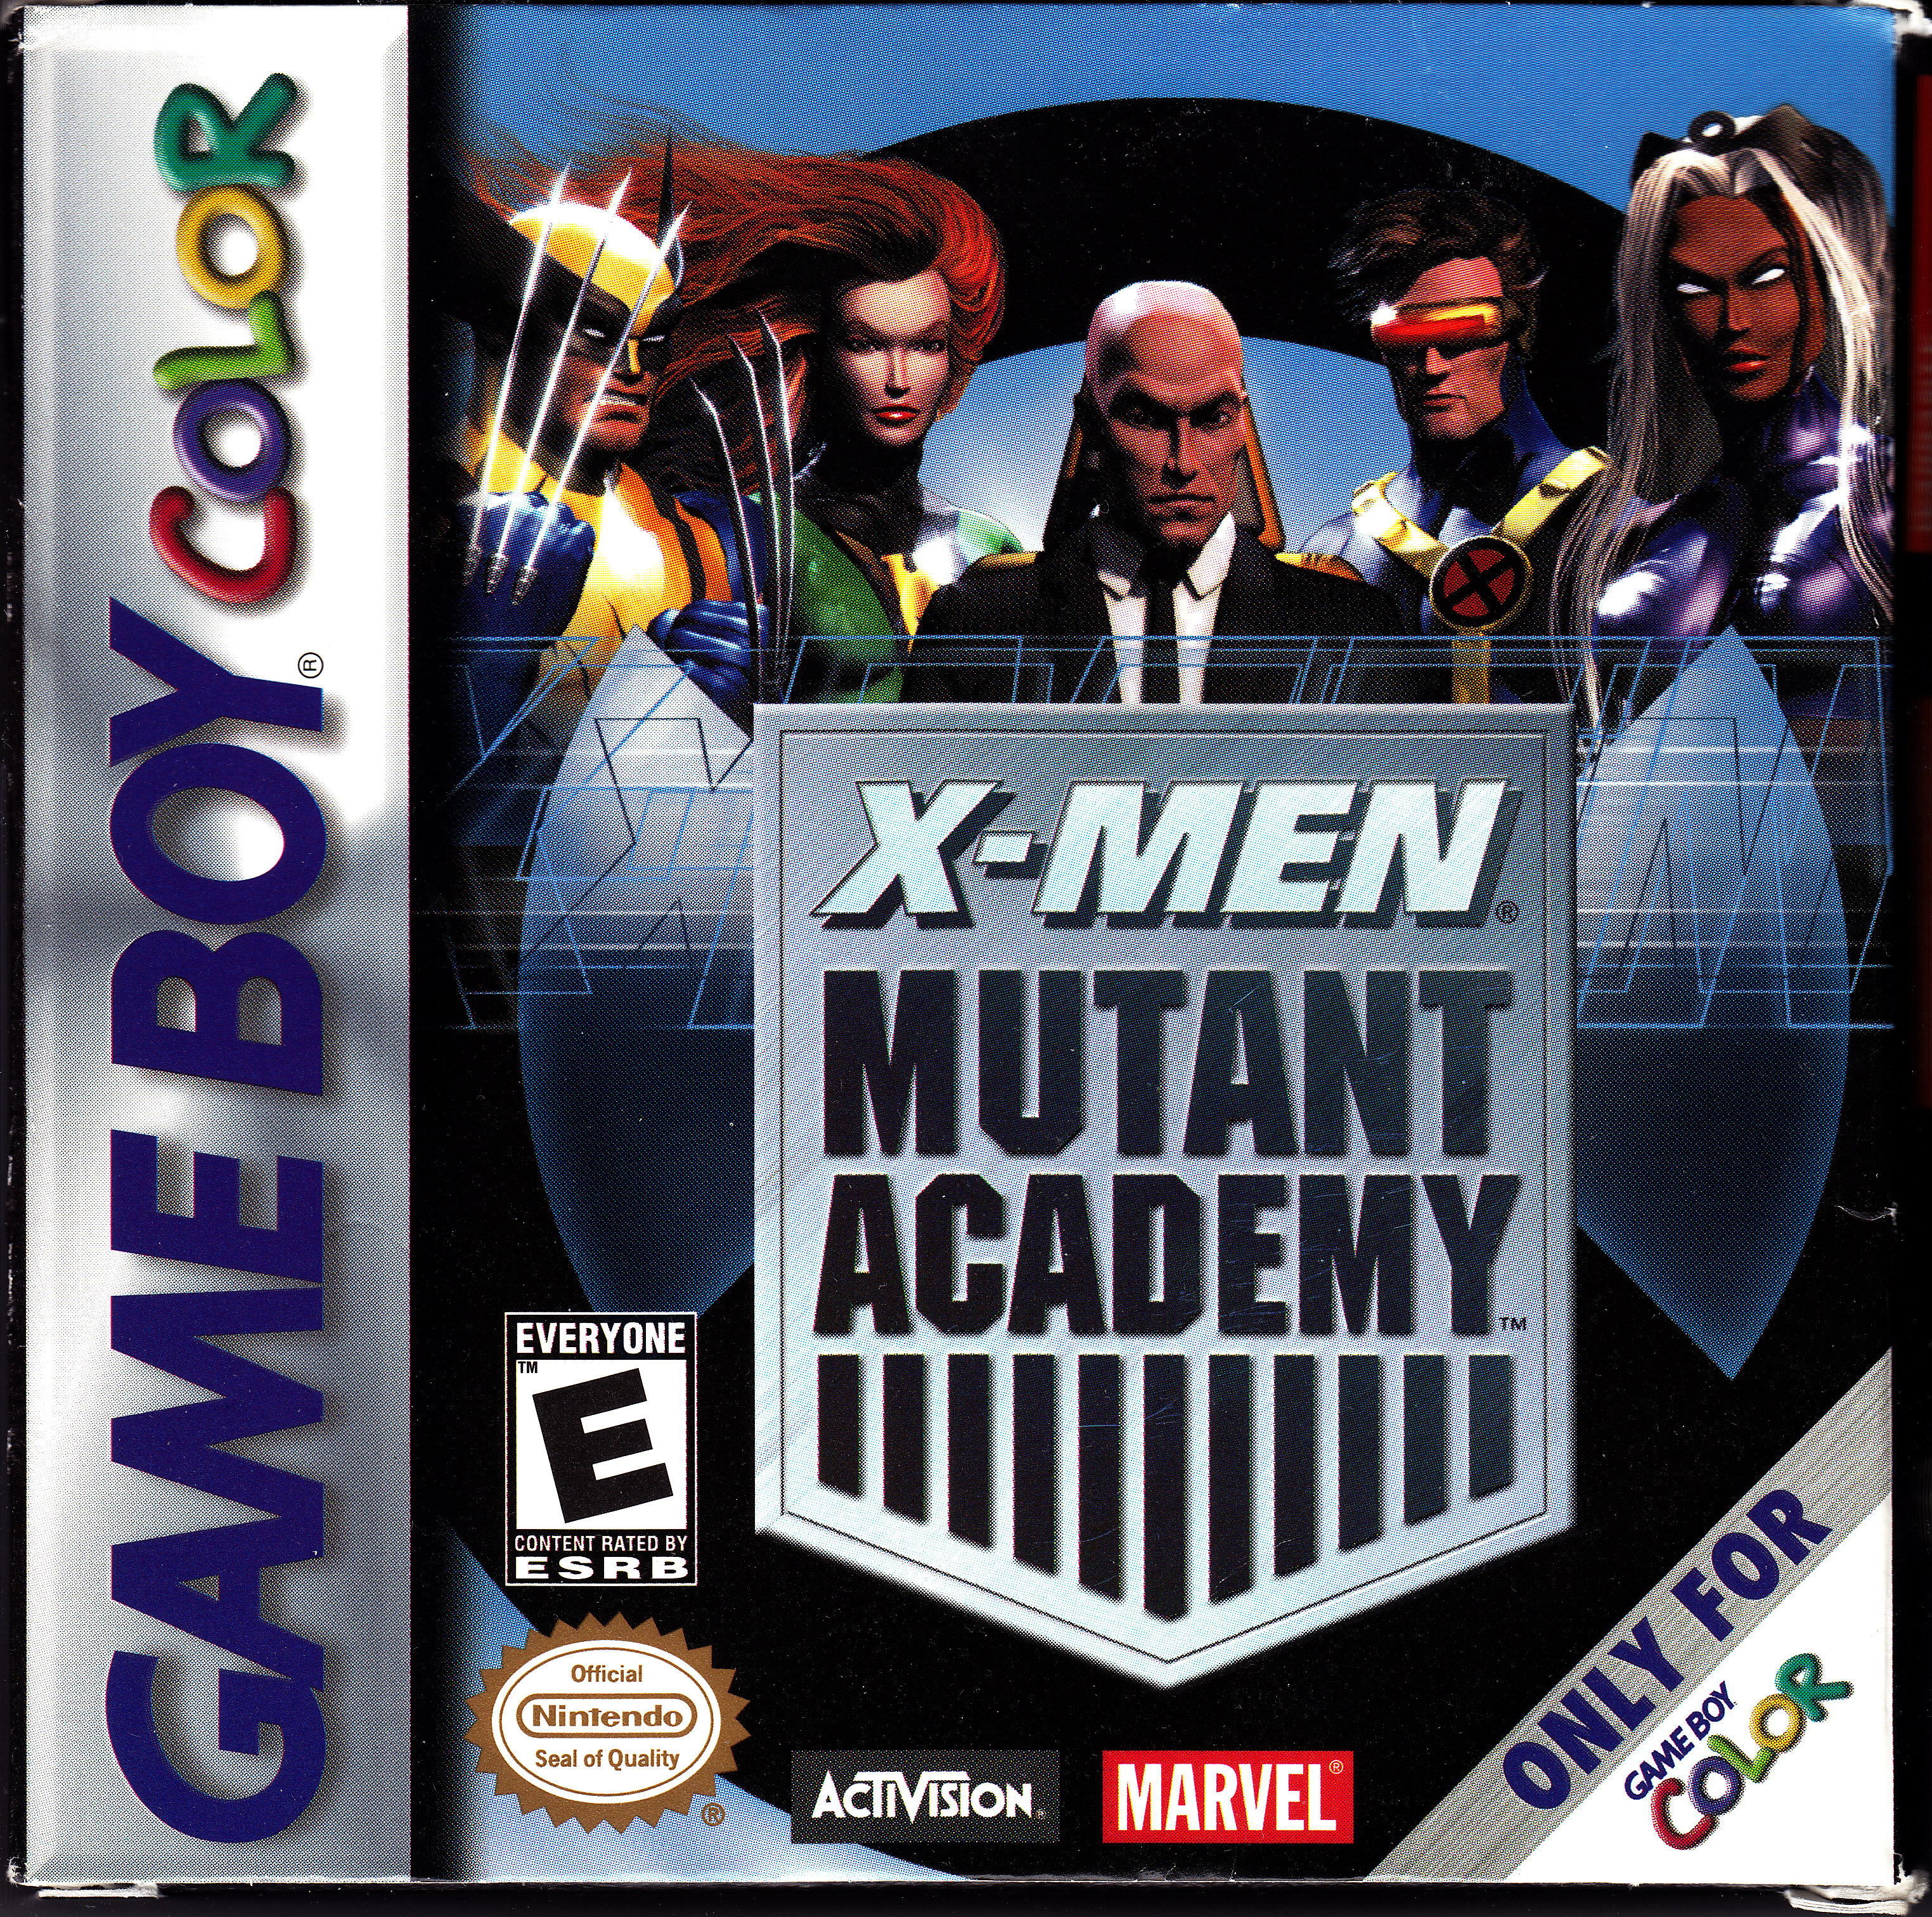 Men: Mutant Academy 2 is a PlayStation video game, the sequel to X